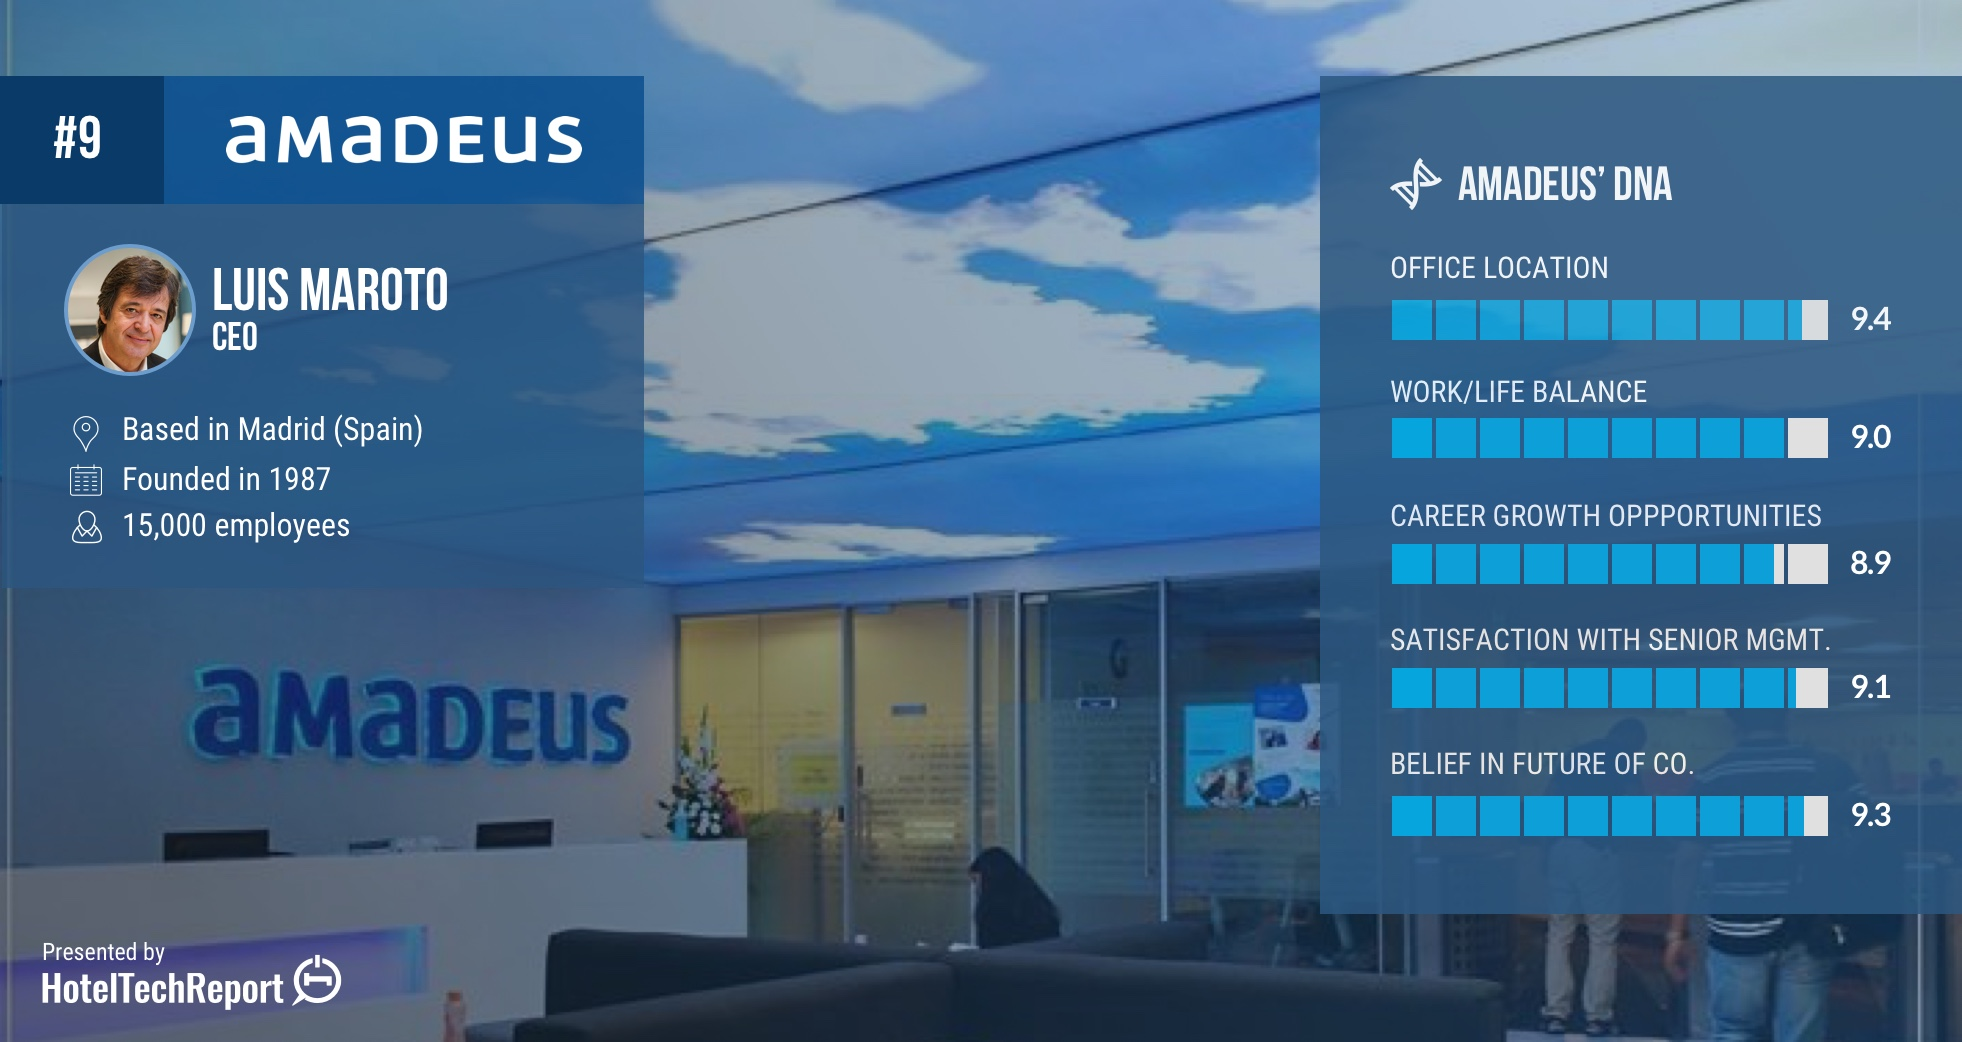 amadeus-best-places-to-work-2018